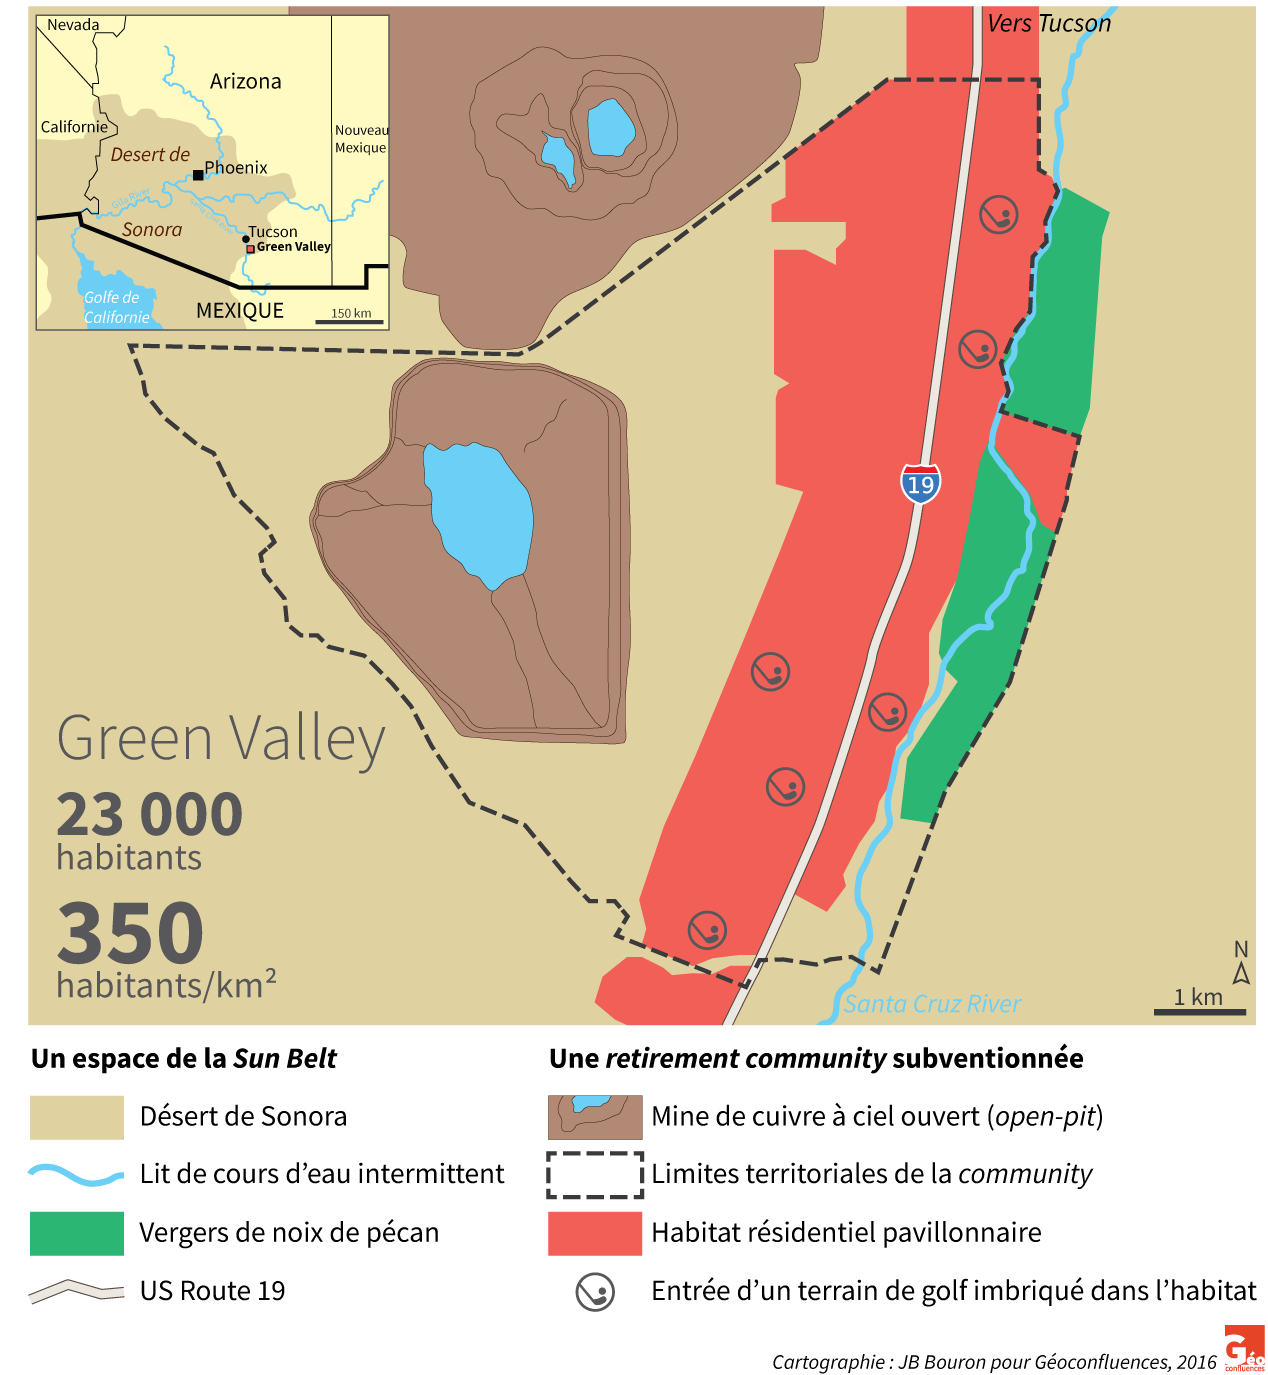 carte map Green valley Arizona Tucson desert de Sonora